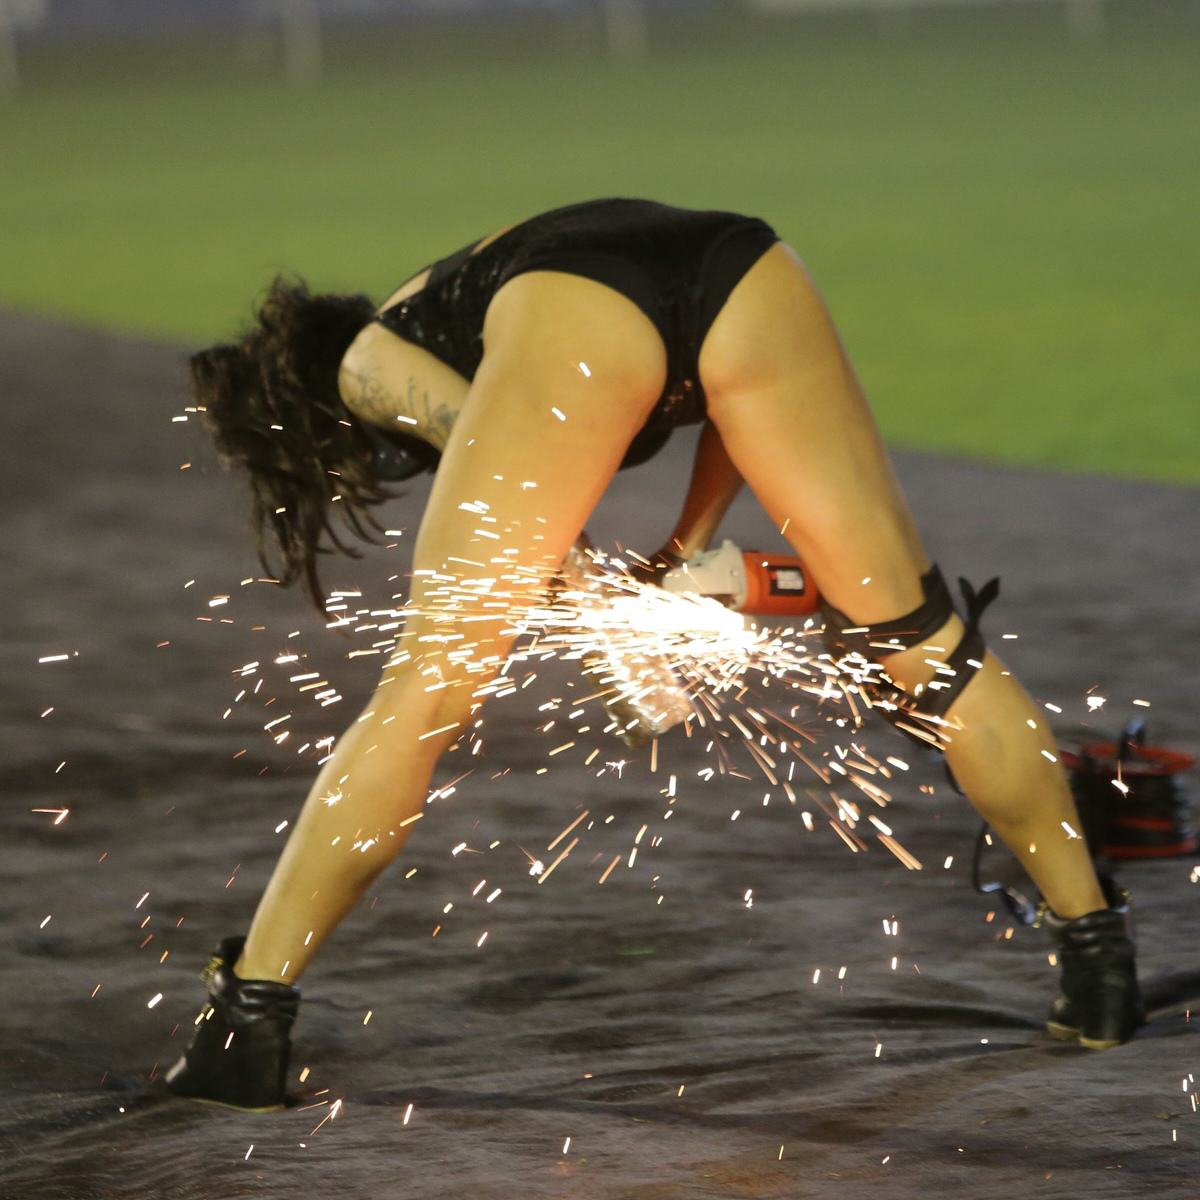 Mayor Hired Leather Clad Stunt Women For Family Bonfire Night Display UNILAD SWNS SPARKS 00276947